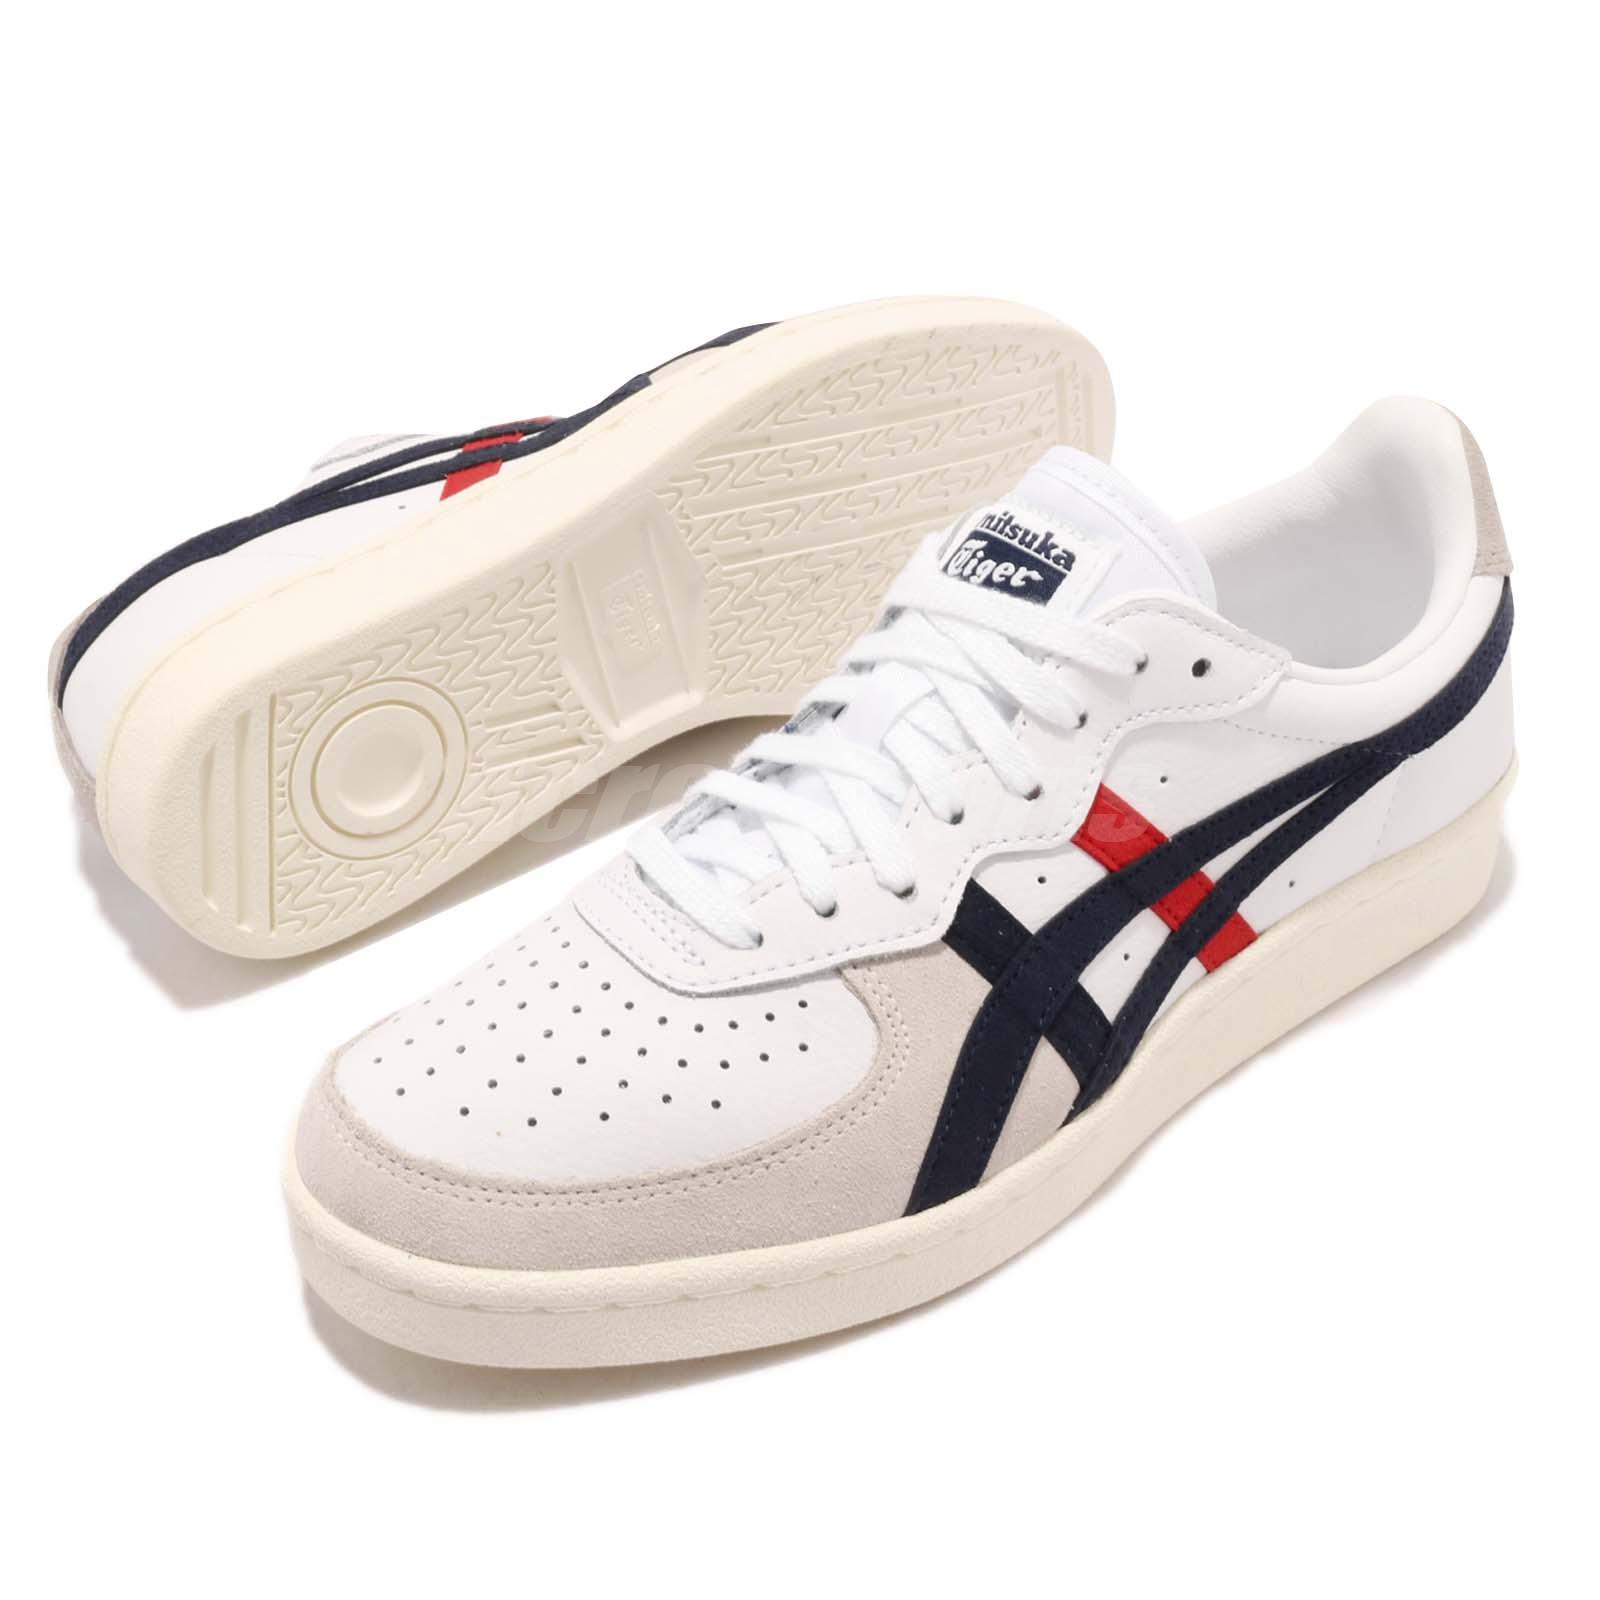 uk availability fceee 85446 Details about Asics Onitsuka Tiger GSM White Peacoat Men Casual Shoes  Sneakers D5K2-Y100